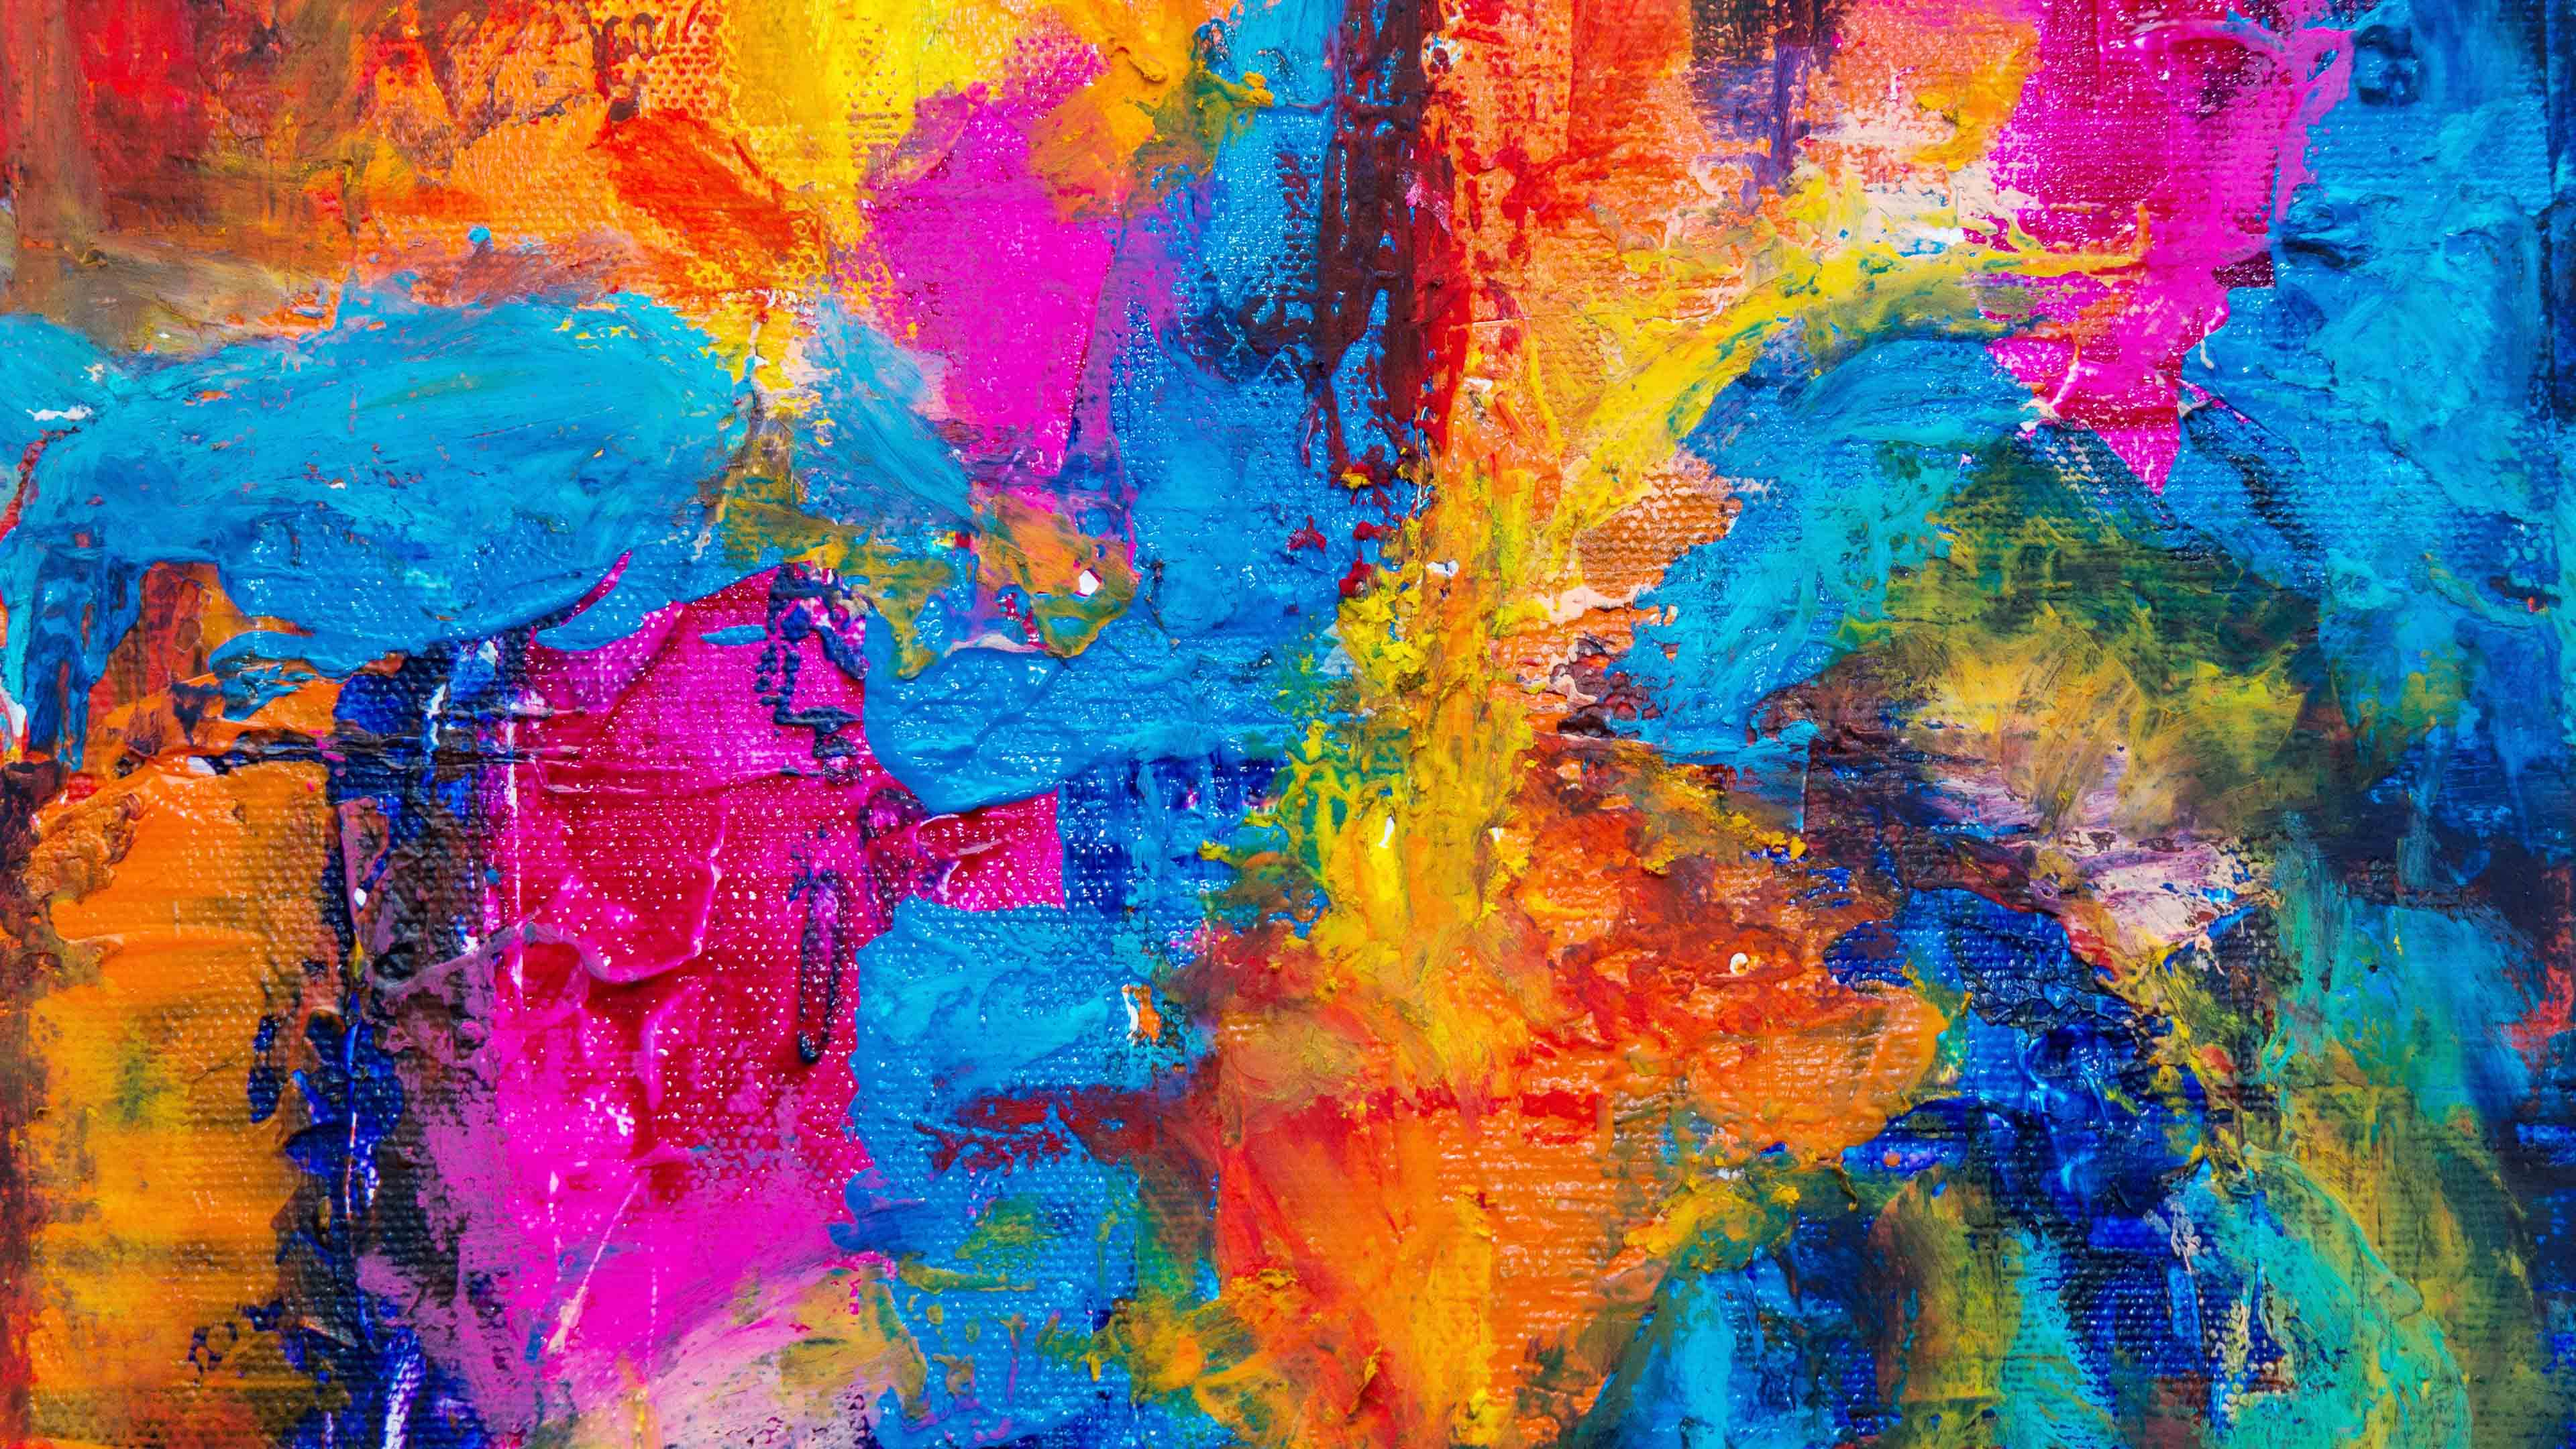 Abstract Expressionism Abstract Painting Acrylic Paint - Acrylic Paint Hd - HD Wallpaper